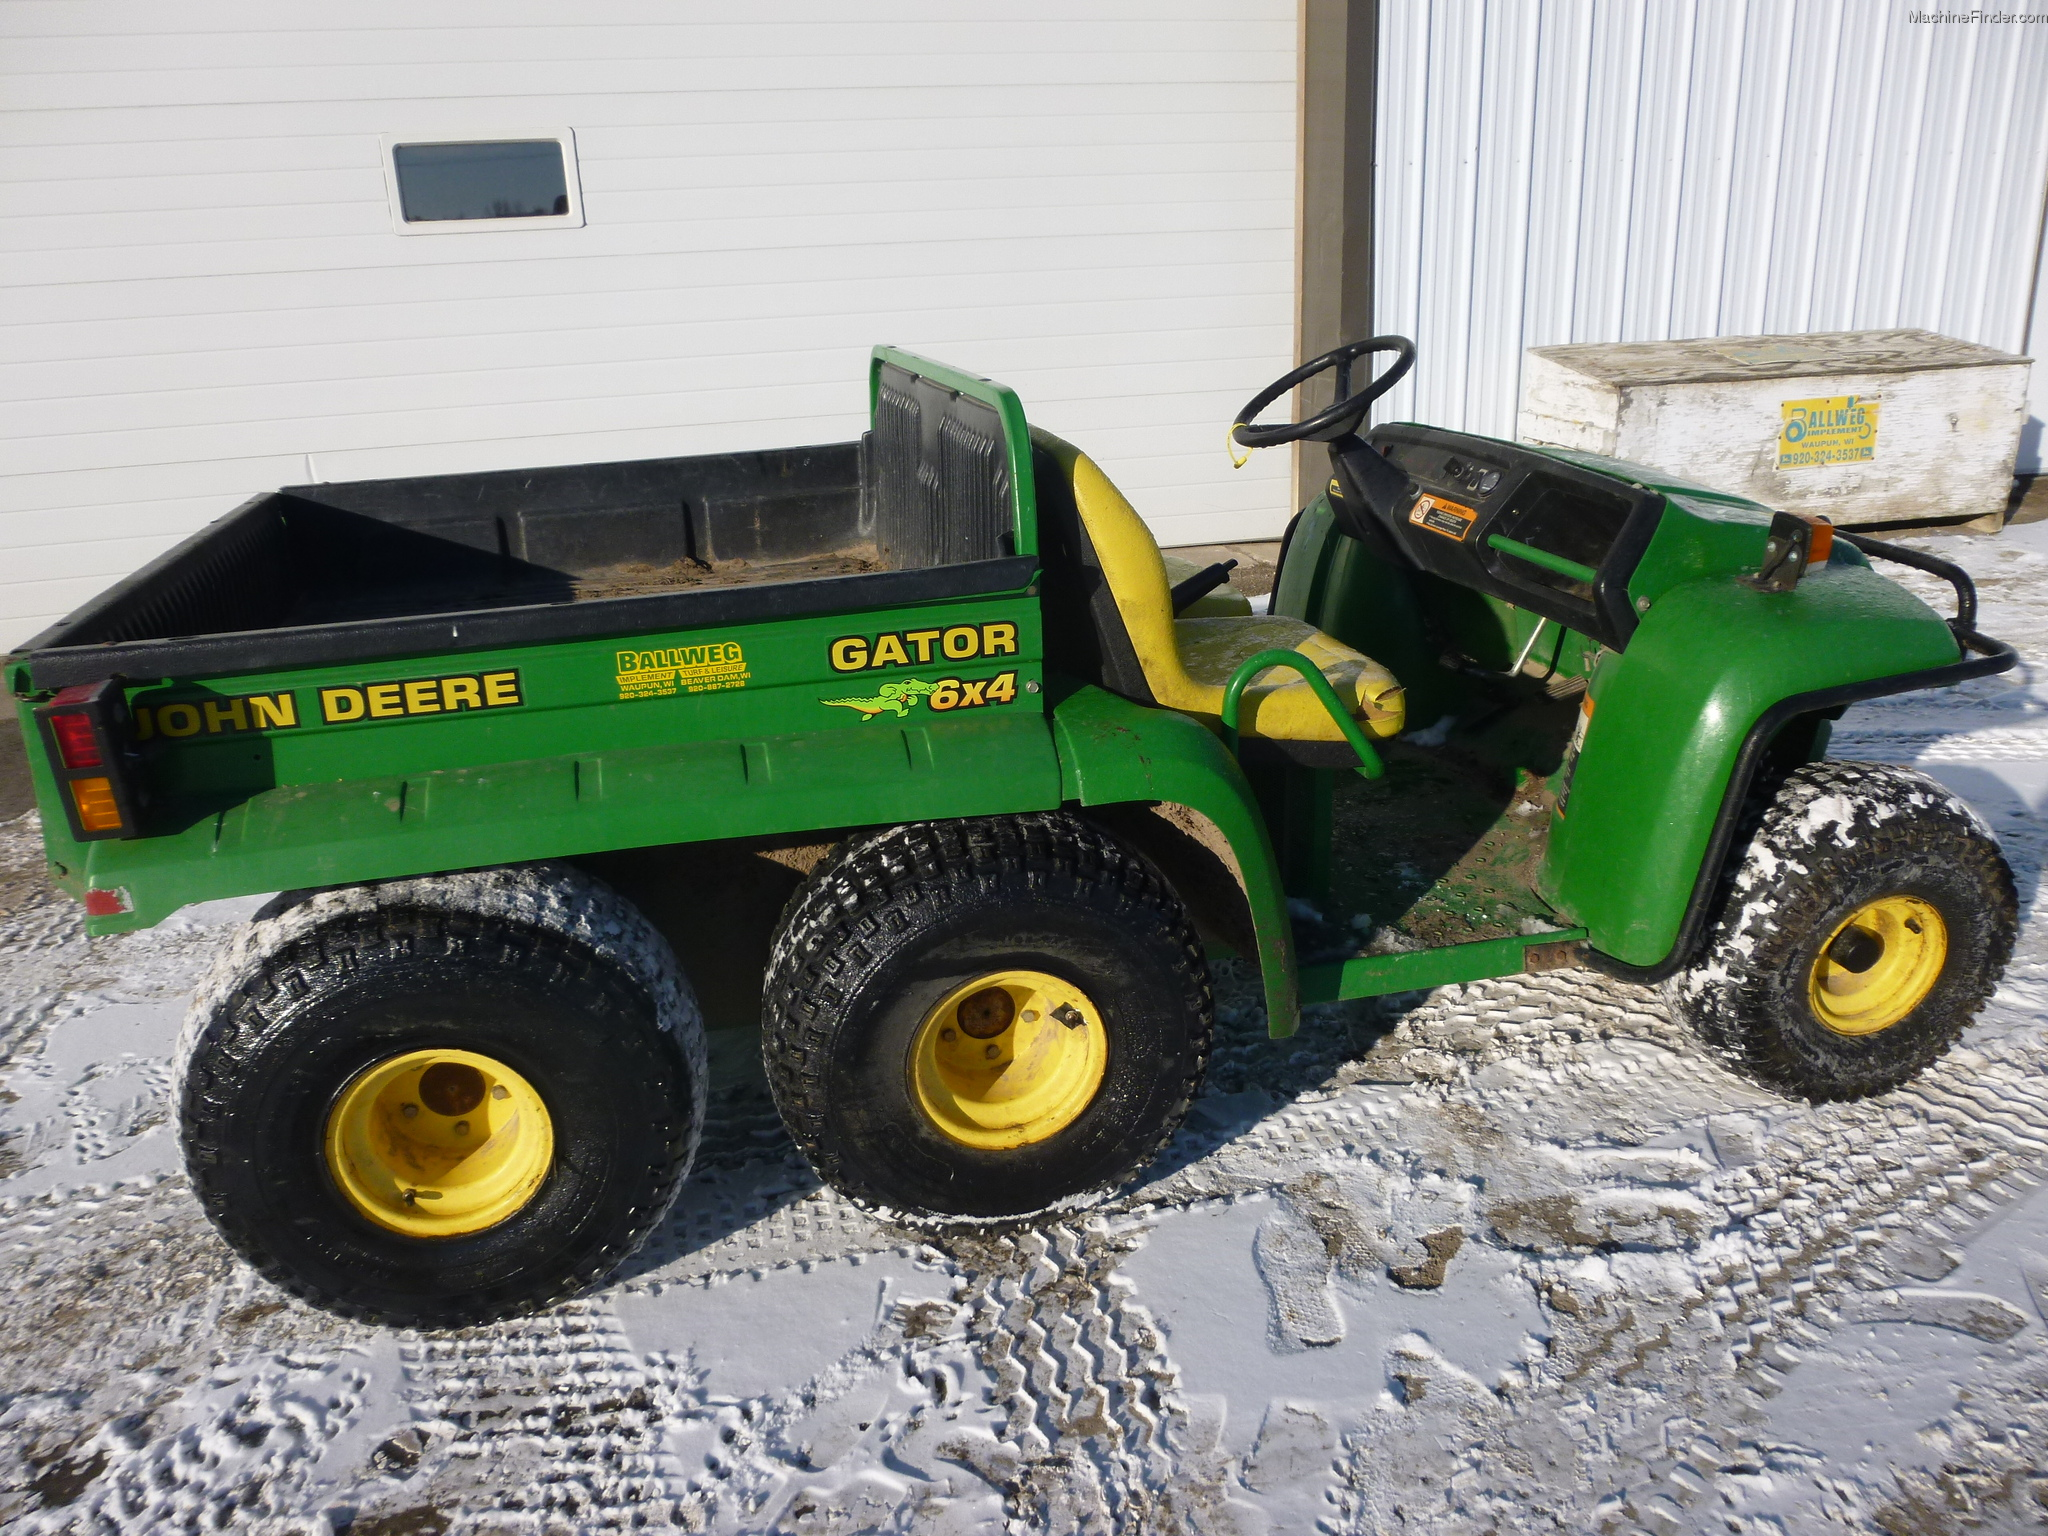 2002 john deere th 6x4 gator atv 39 s and gators john deere. Black Bedroom Furniture Sets. Home Design Ideas